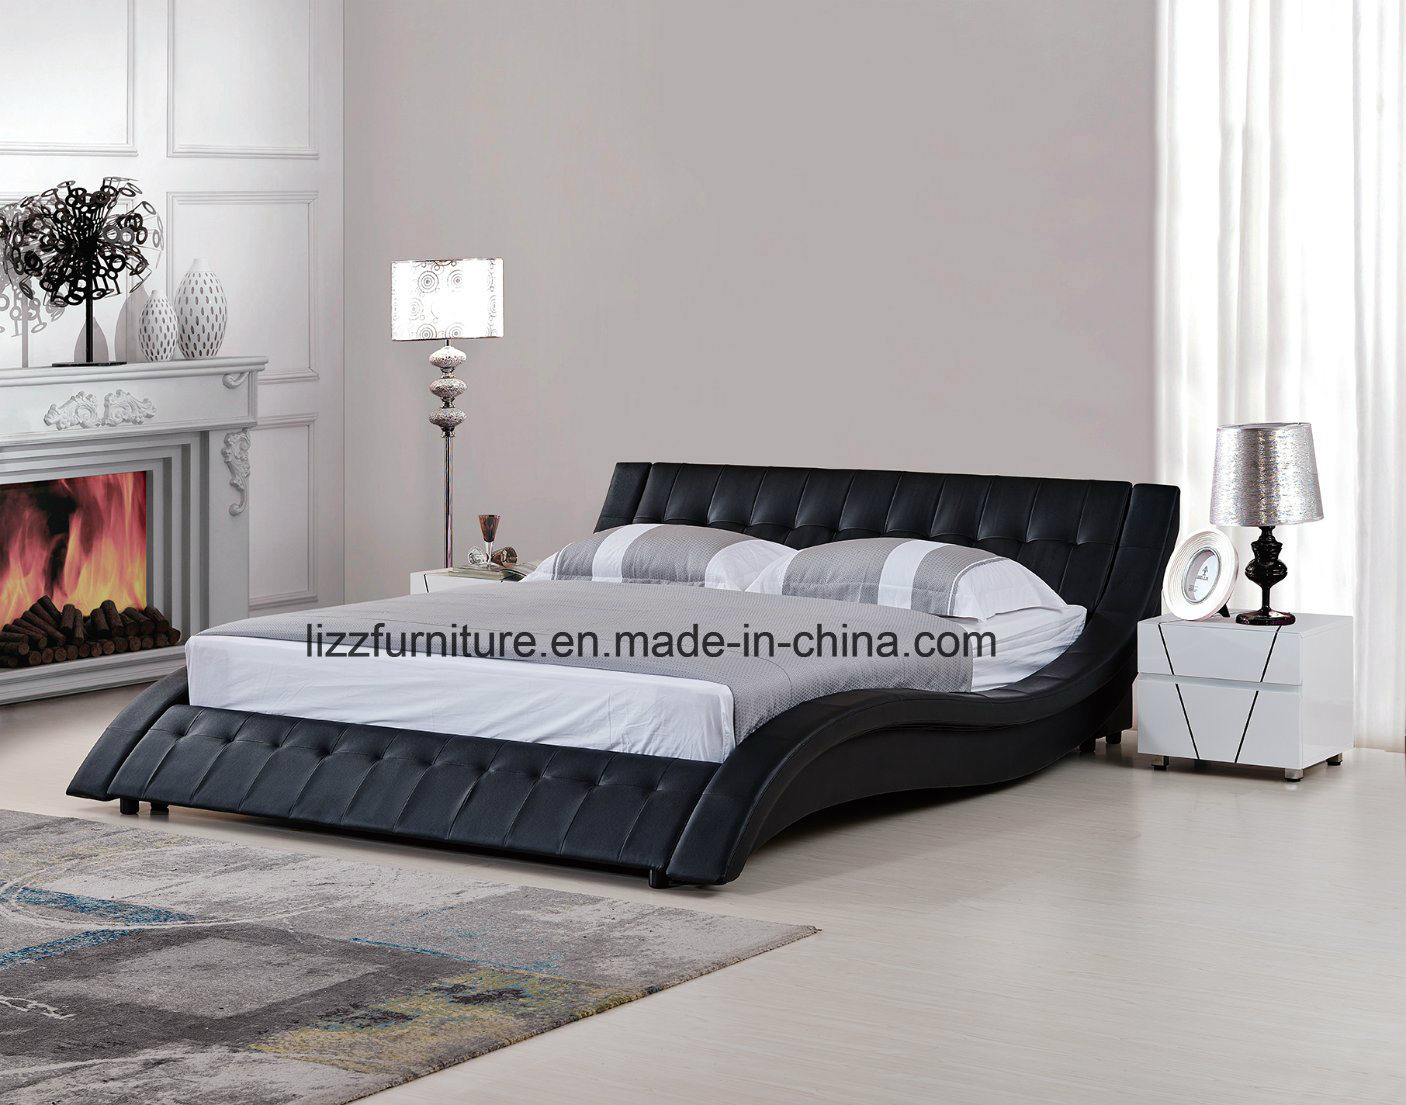 China Euro Black Leather Queen Size Curved Shape Platform Bed